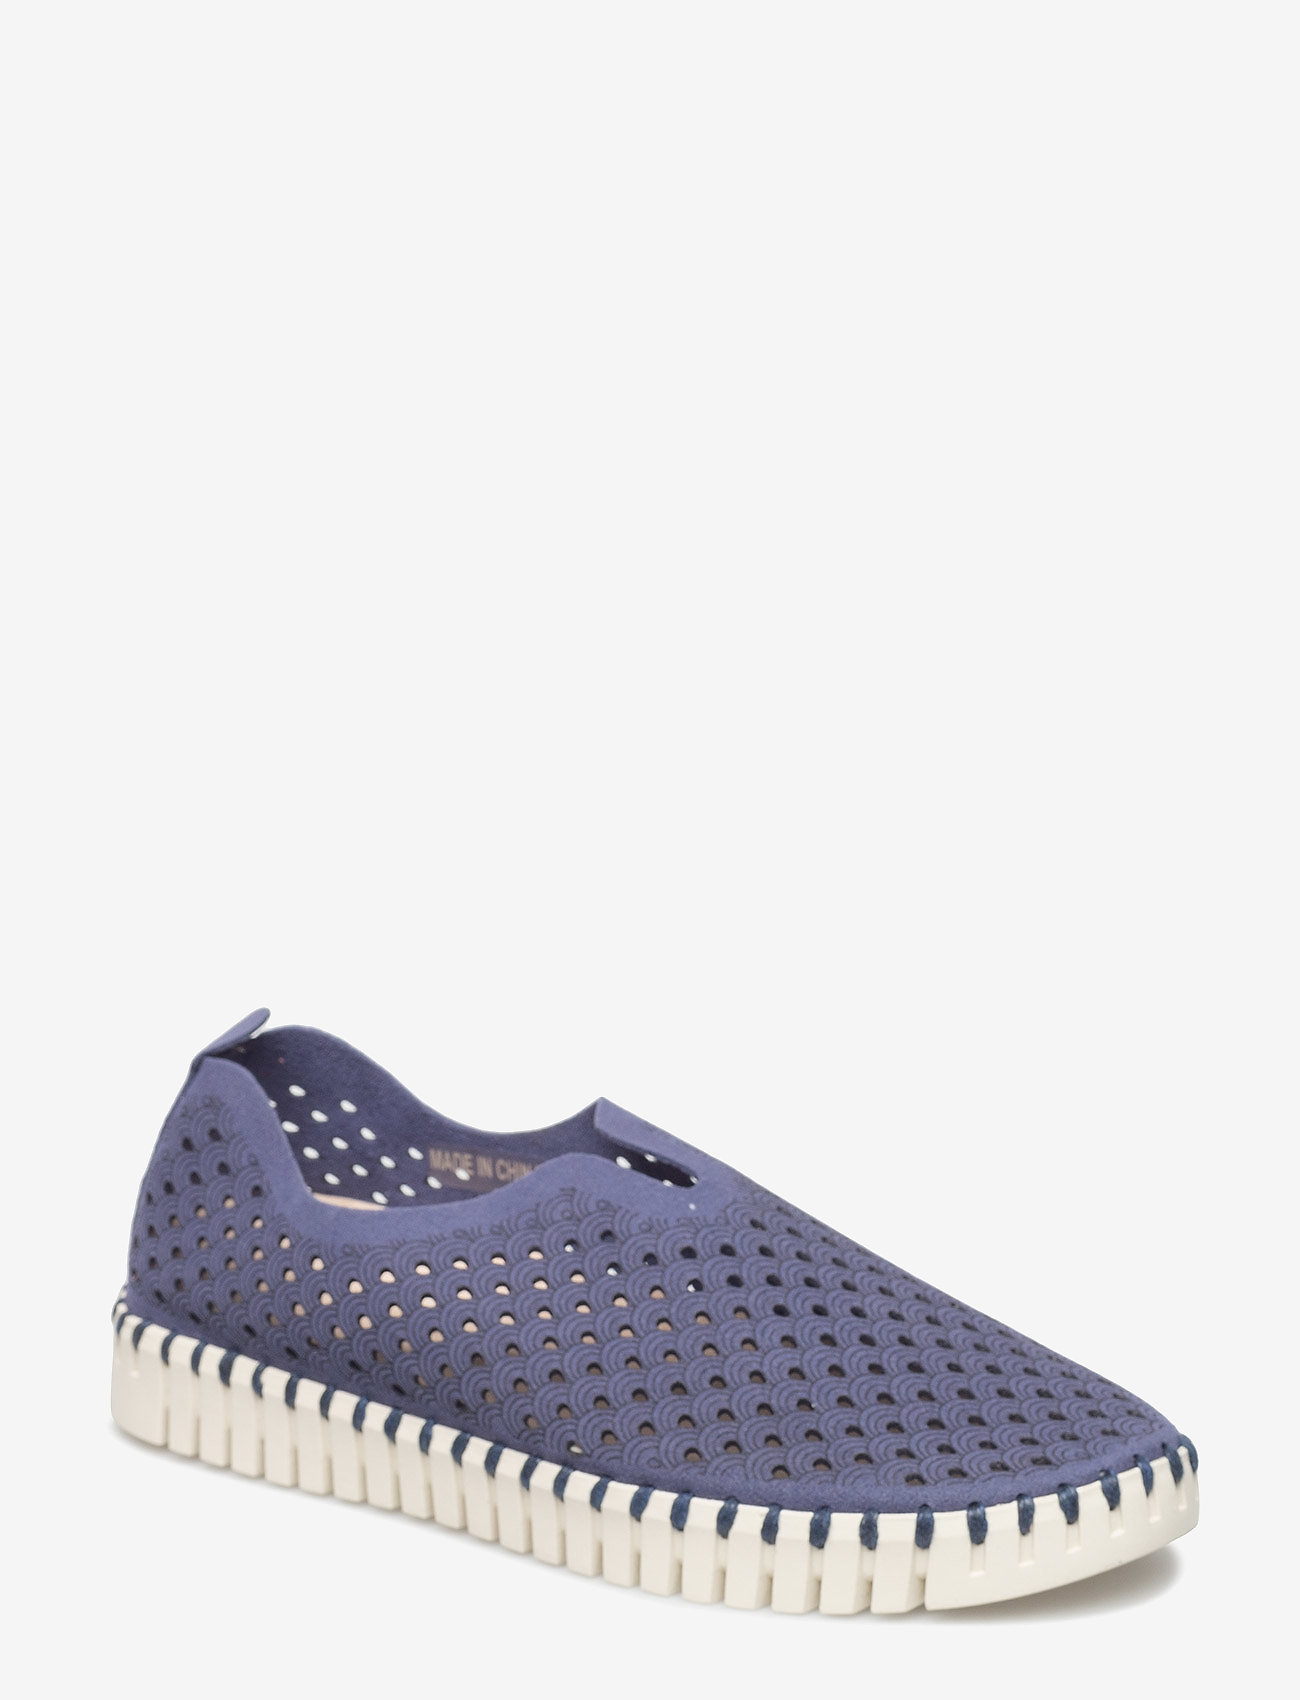 Ilse Jacobsen - Flats - slip-on sneakers - 600 navy - 0